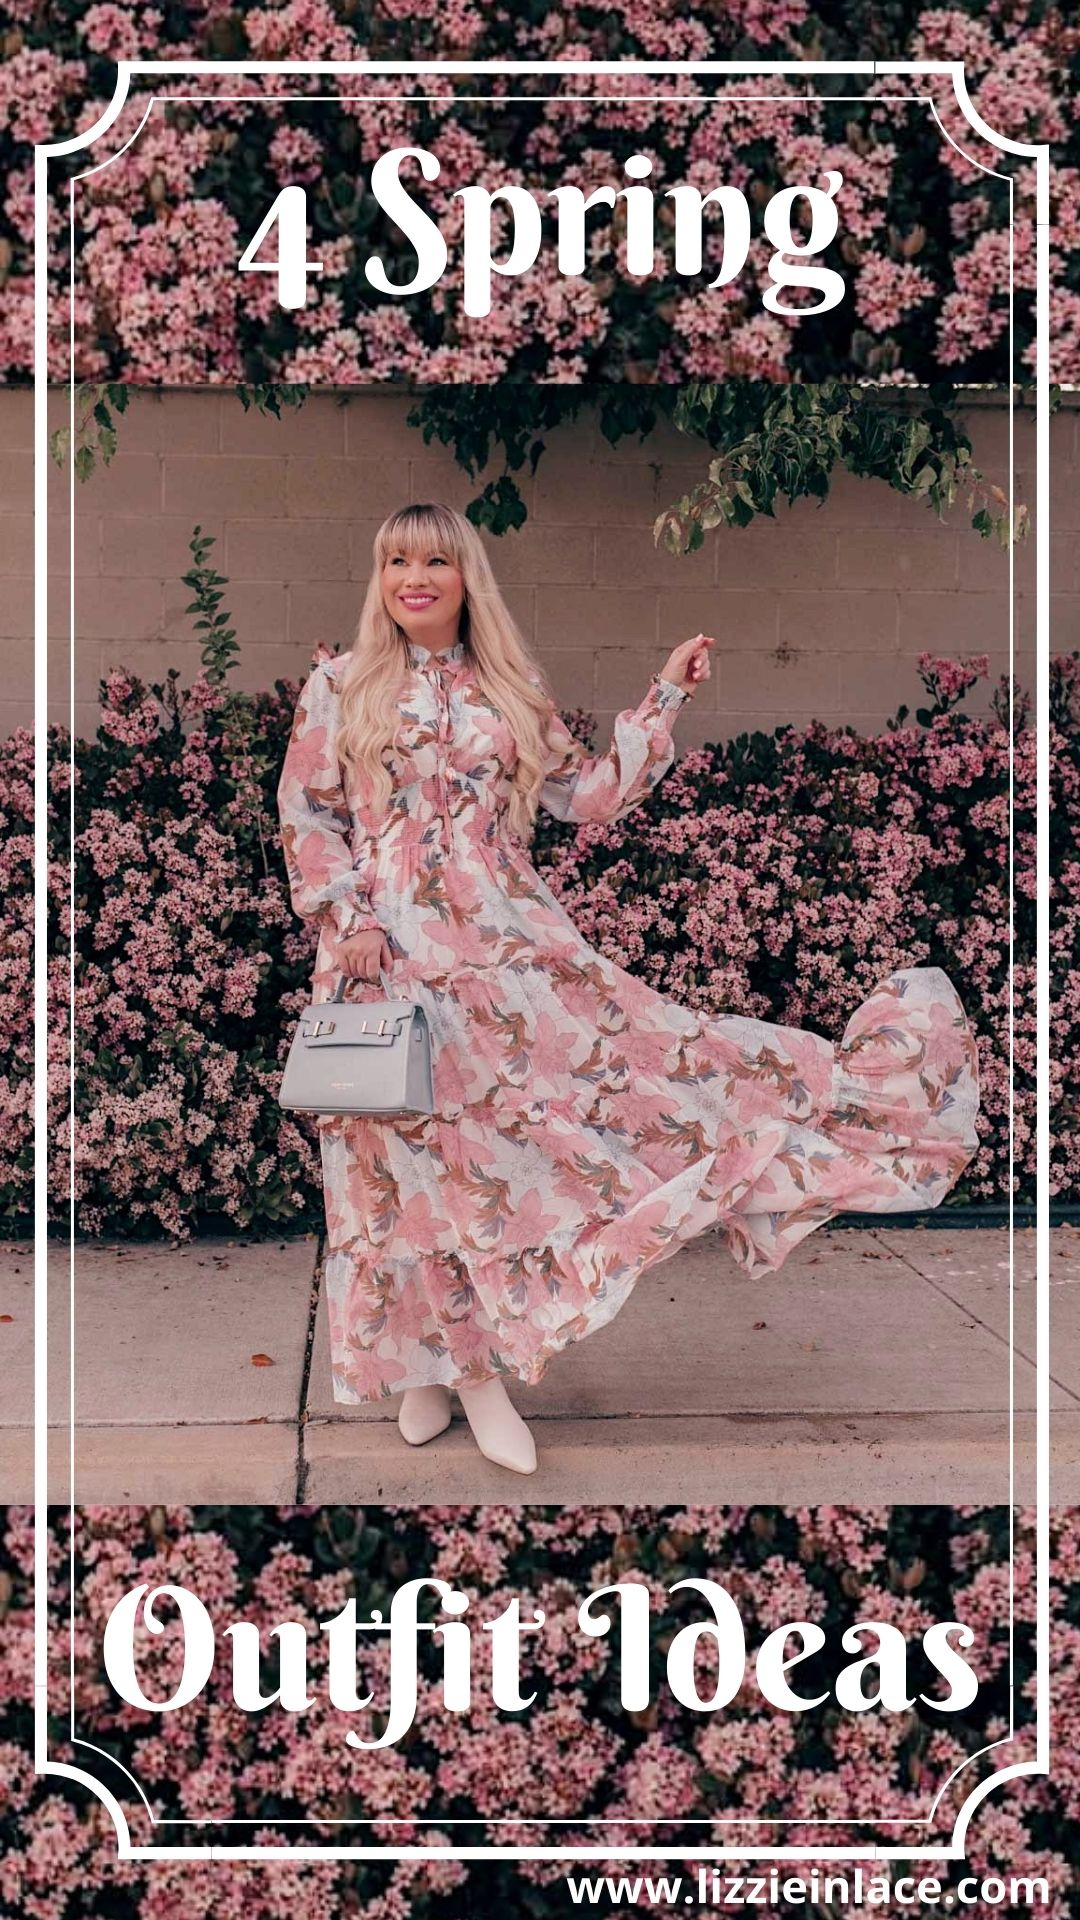 Feminine Fashion Blogger Elizabeth Hugen of Lizzie in Lace shares an updated Chicwish review and styles 4 spring outfit ideas